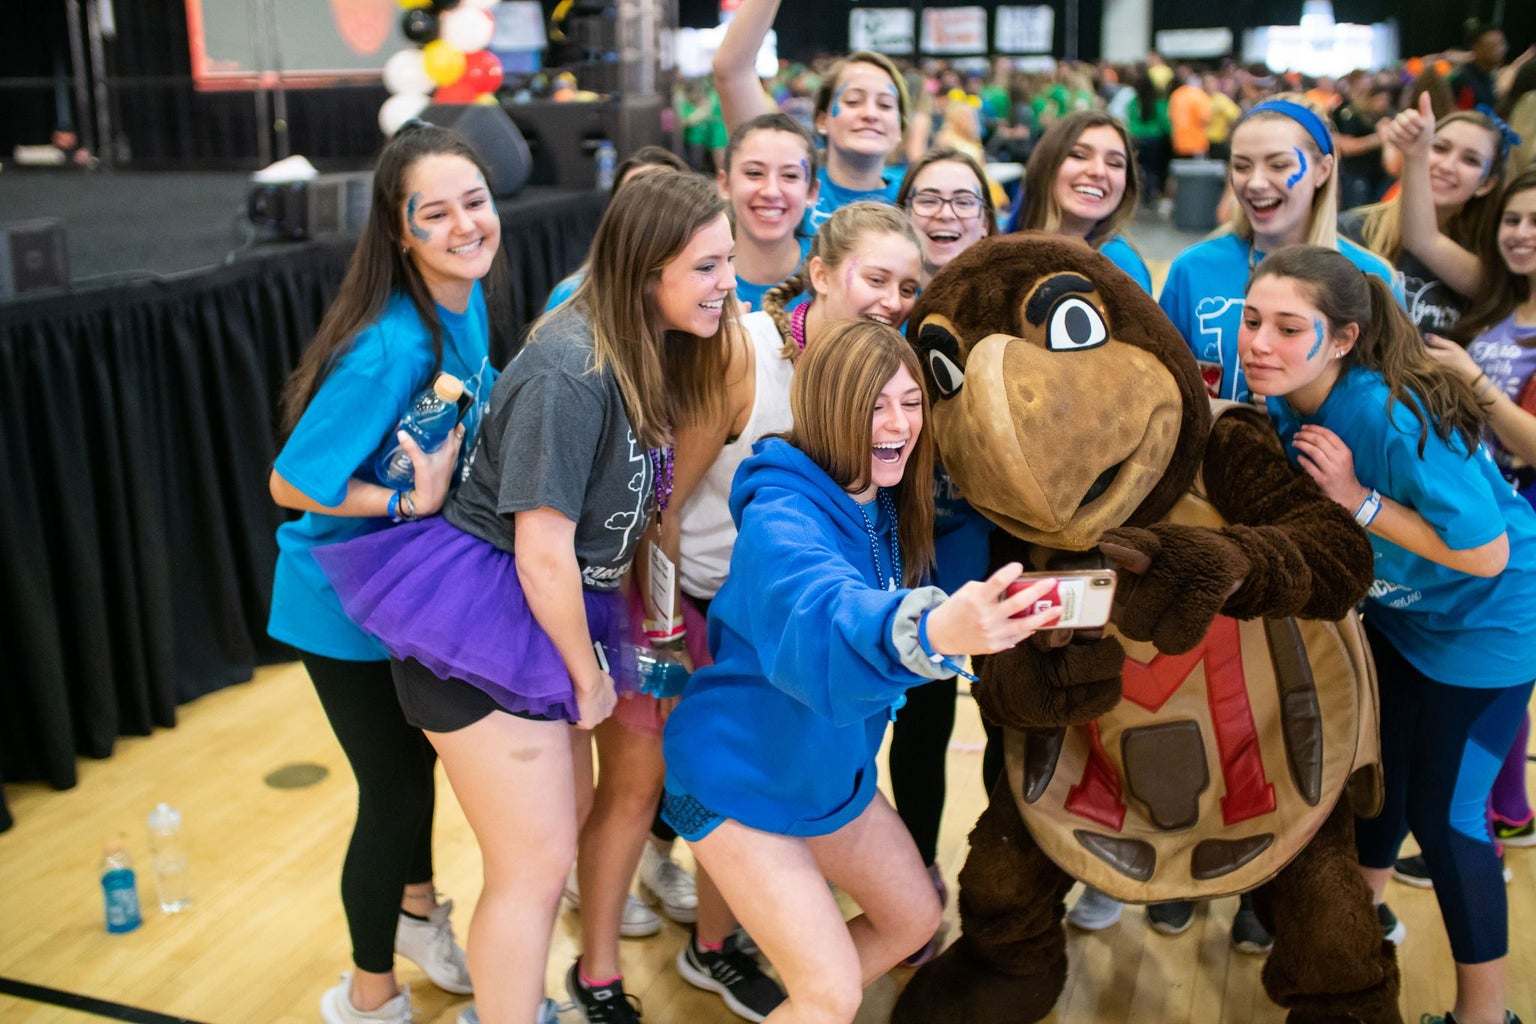 Original photos via on campus organization, Terp Thon. Images are to be used with an upcoming article featuring the 12-hour philanthropy event coming up.